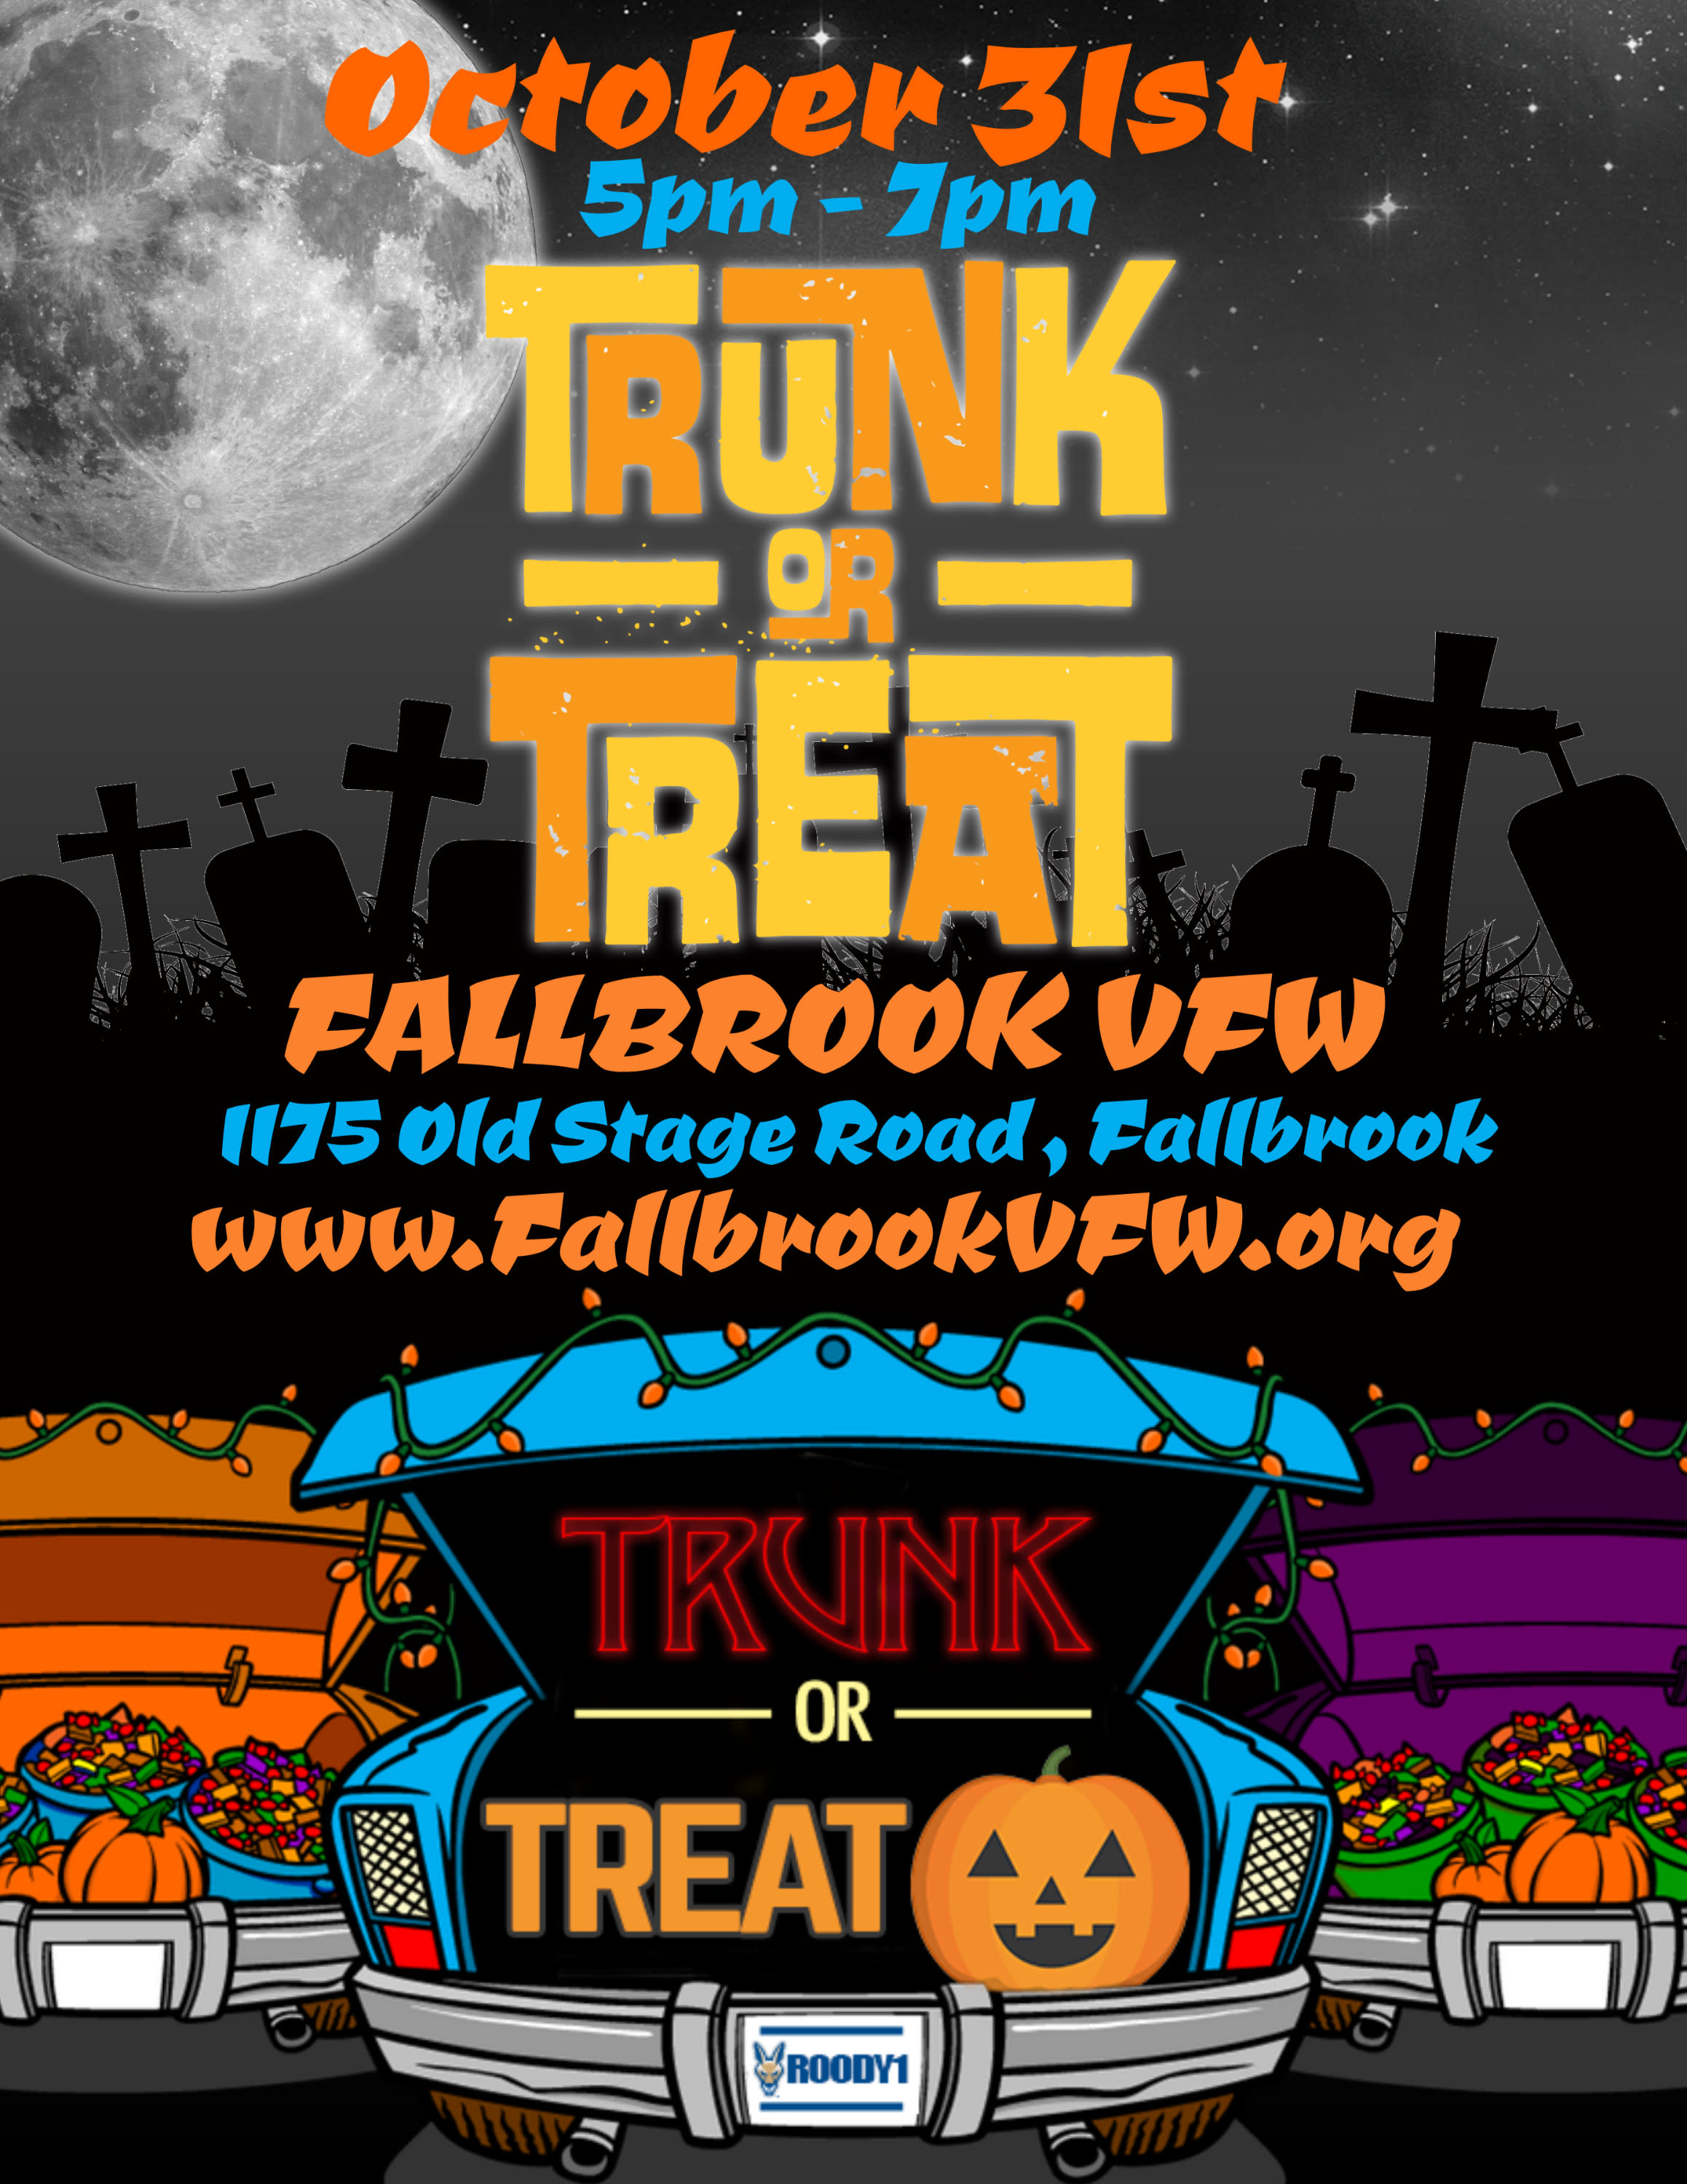 Trunk or Treat OCT 31st 5pm-6pm